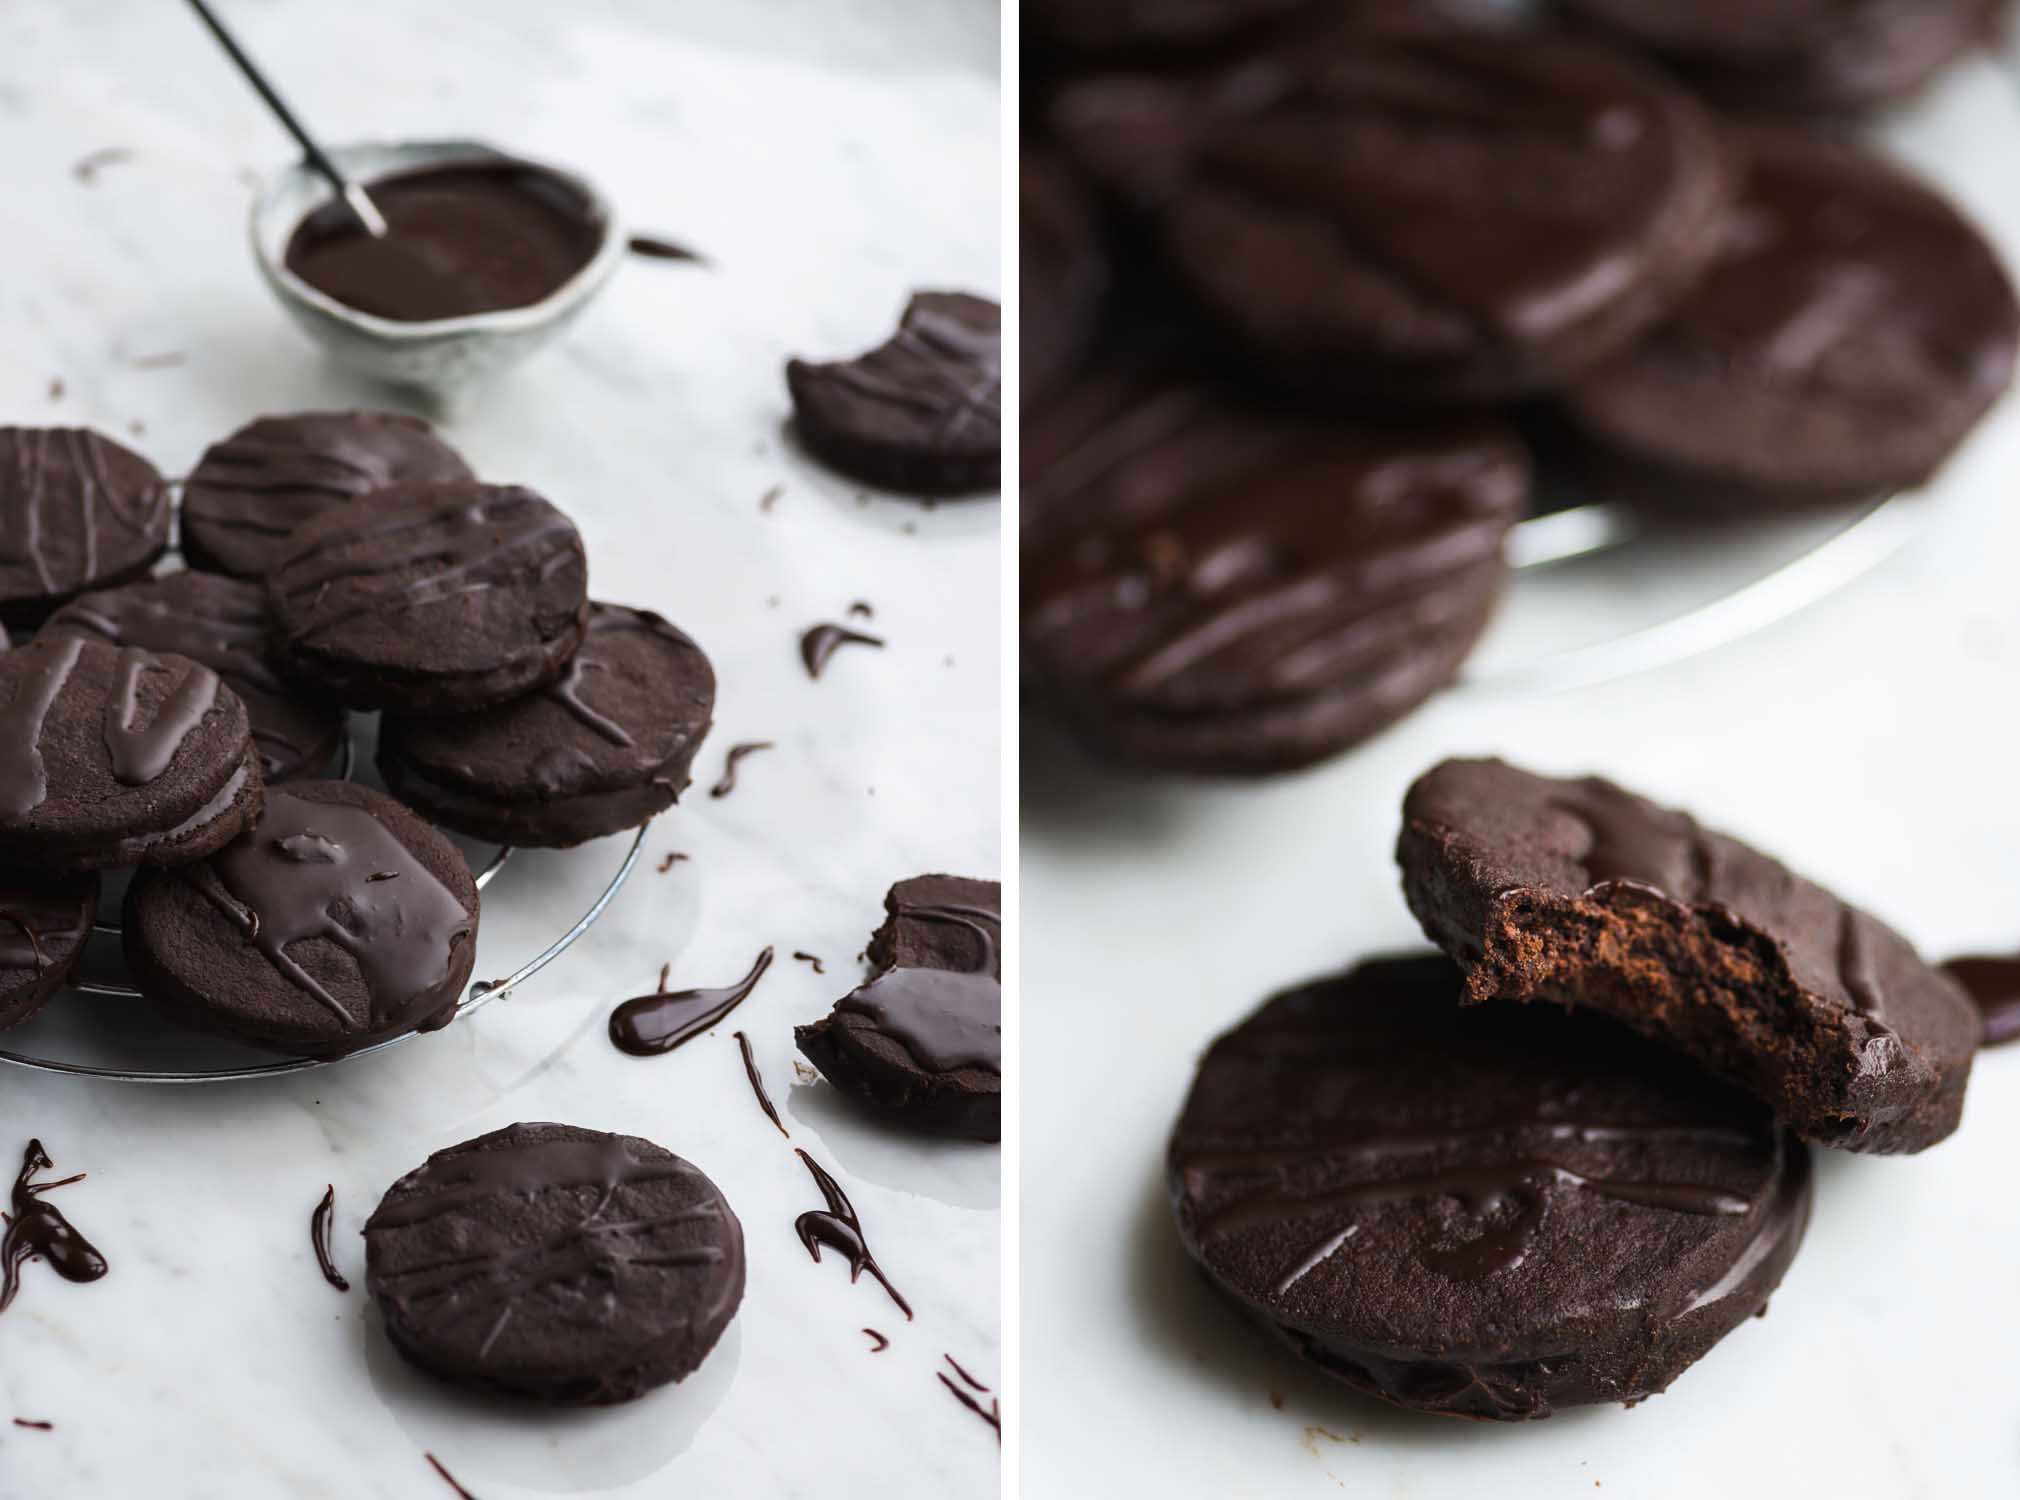 Chocolate 'O' Cookie Recipe by Yotam Ottolenghi and Helen Goh